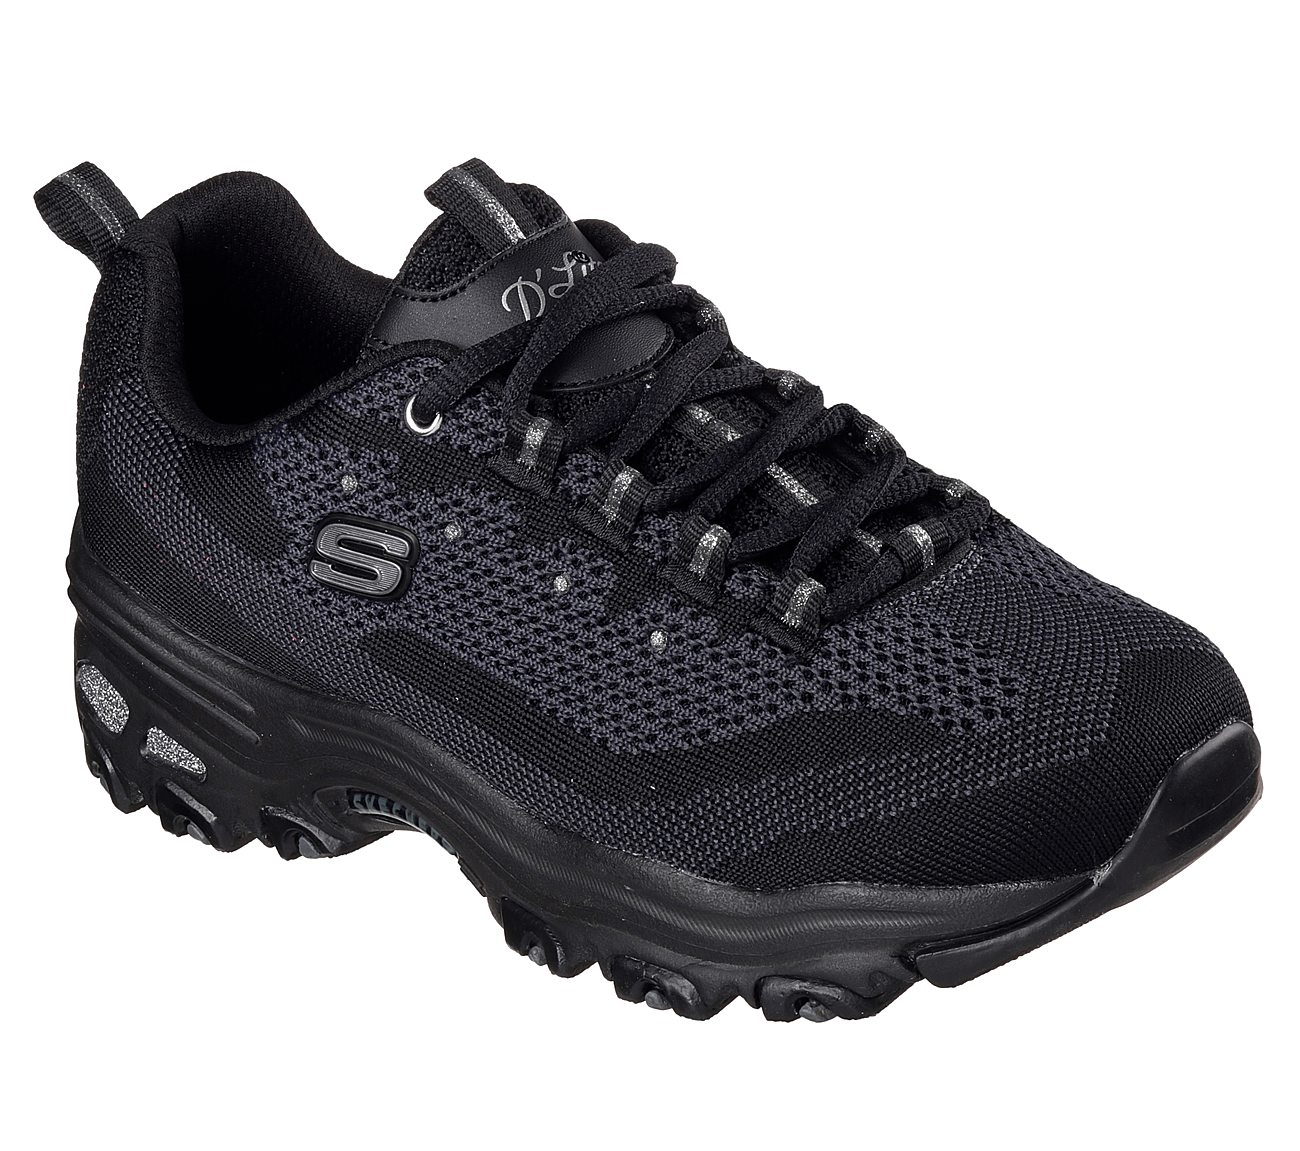 2018 stylish destroyed Womens Skechers Dlites Resilient Sneaker Clog Gray/White Womens Gray/White Skechers Womens Skechers